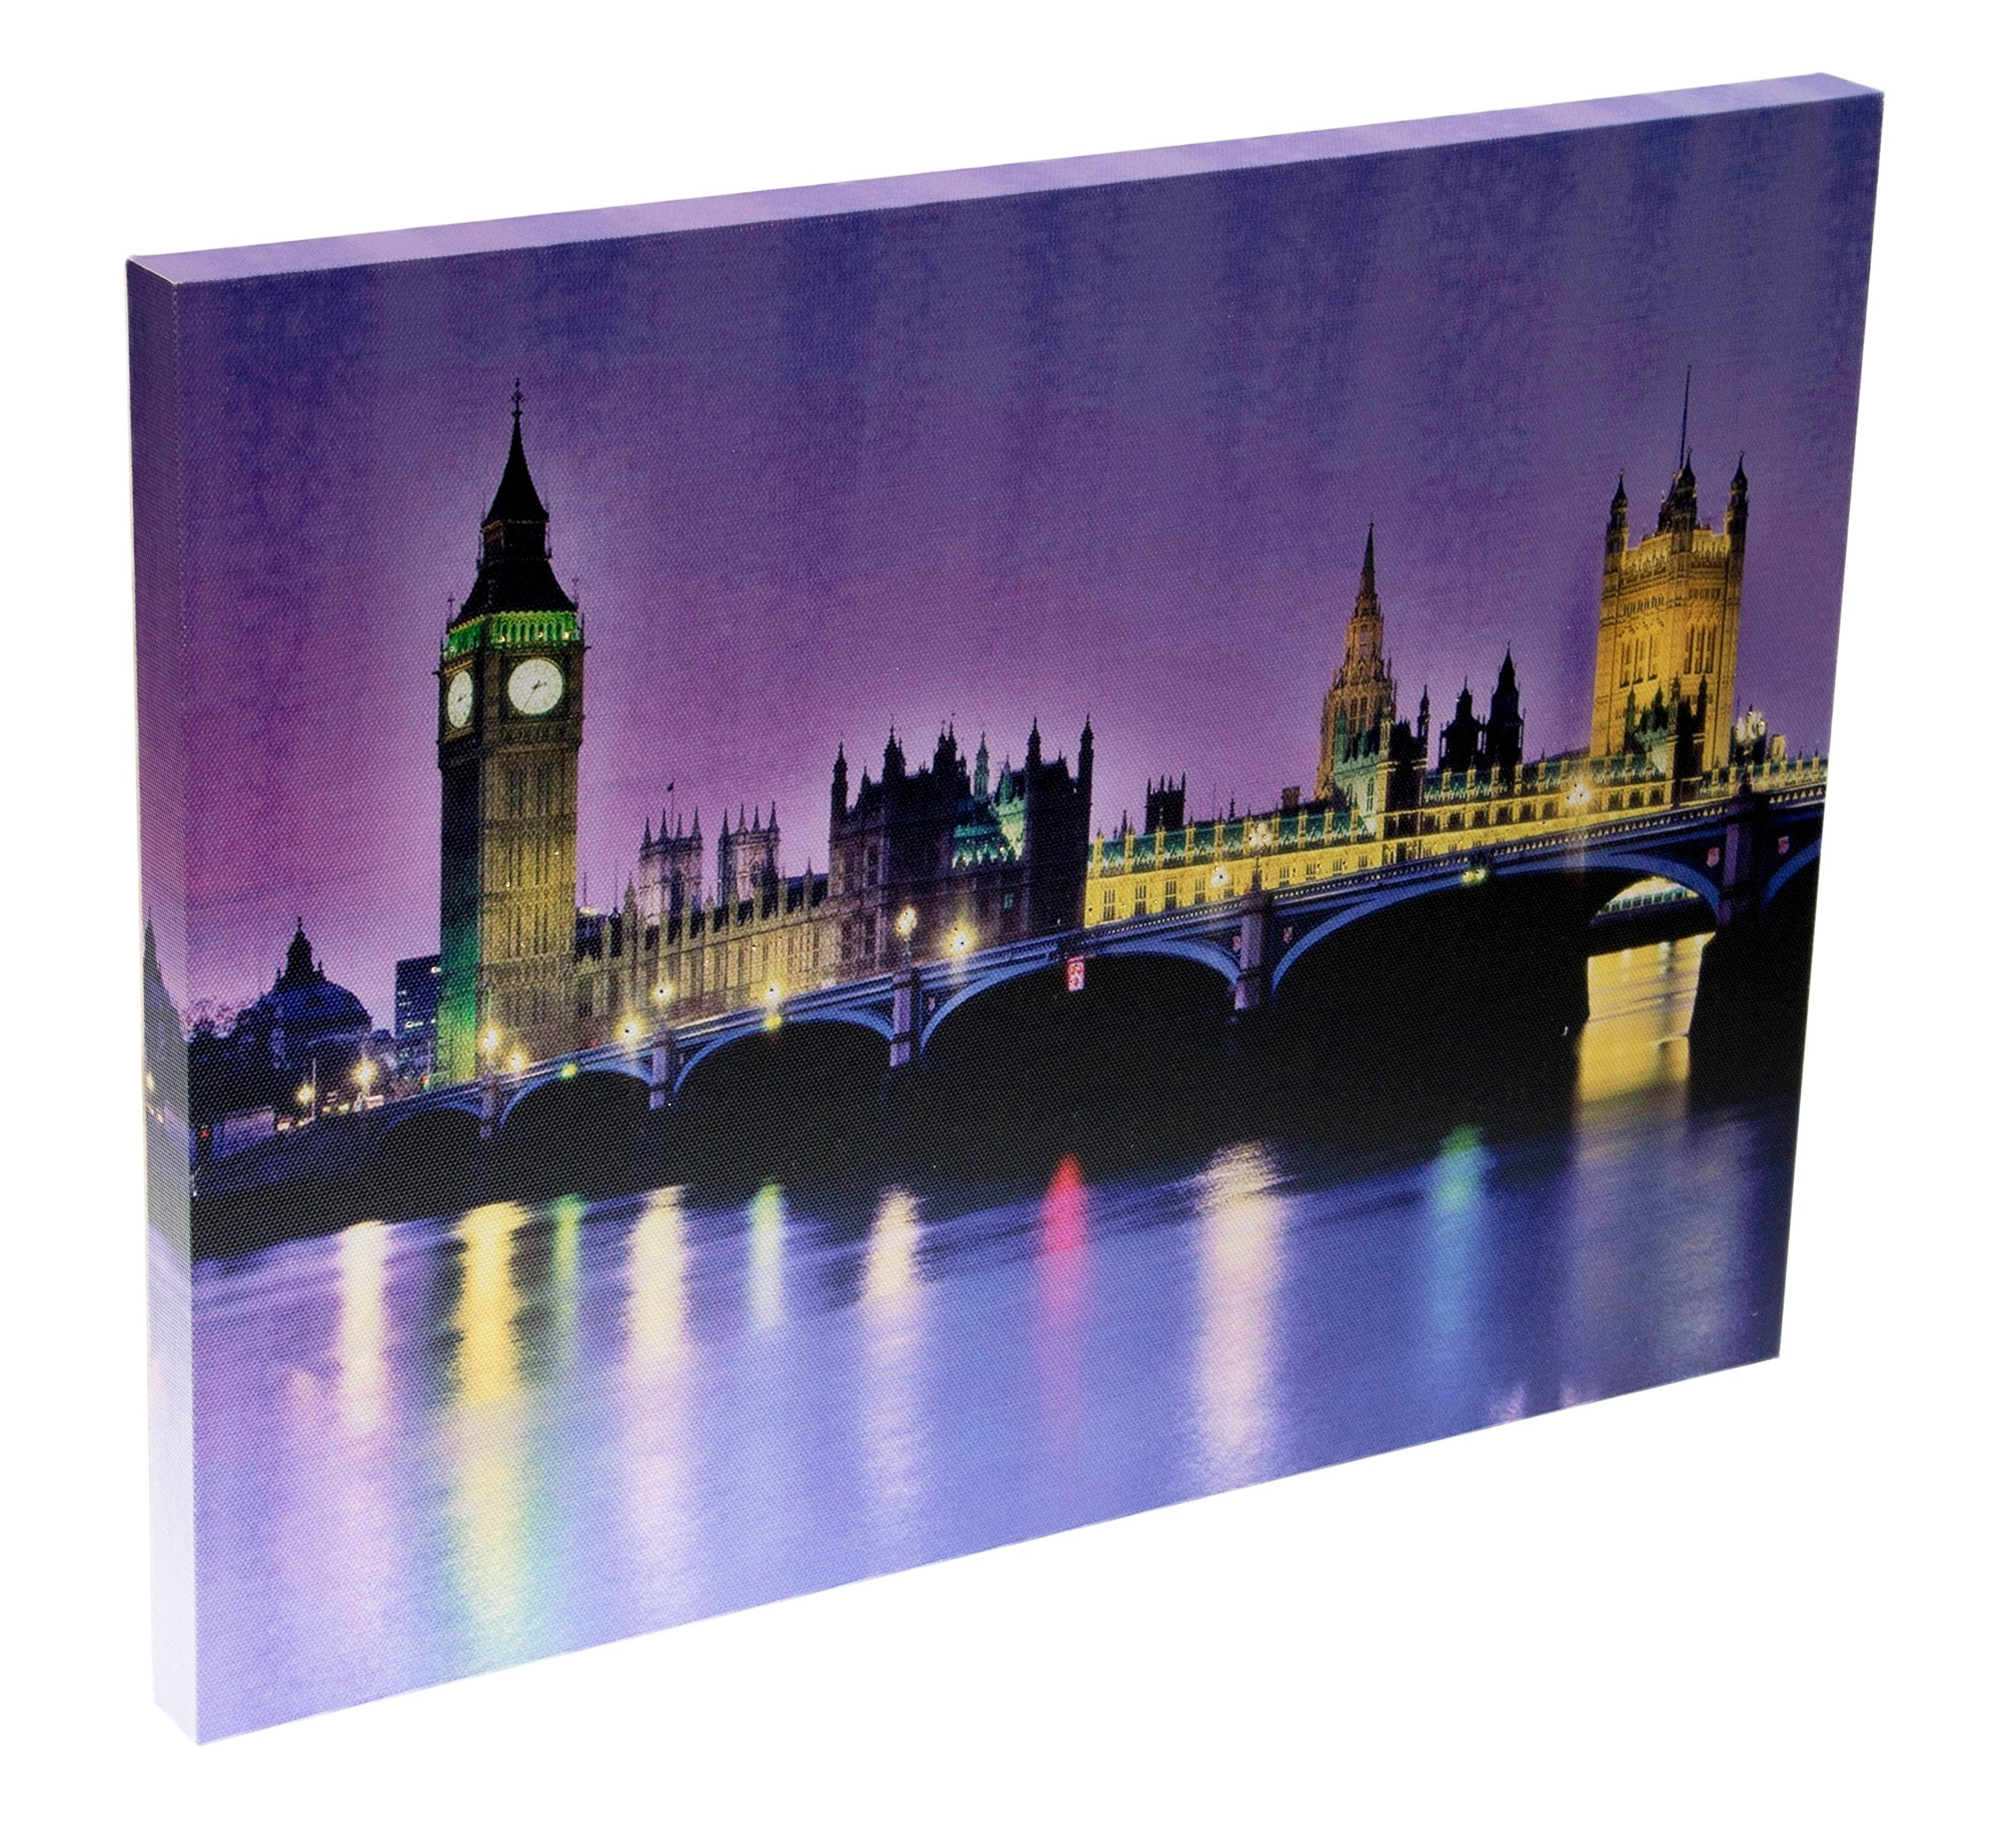 Most Current London Scene Wall Art Pertaining To London Scene Led Light Canvas Wall Art Home Office Decor Hanging (View 11 of 15)